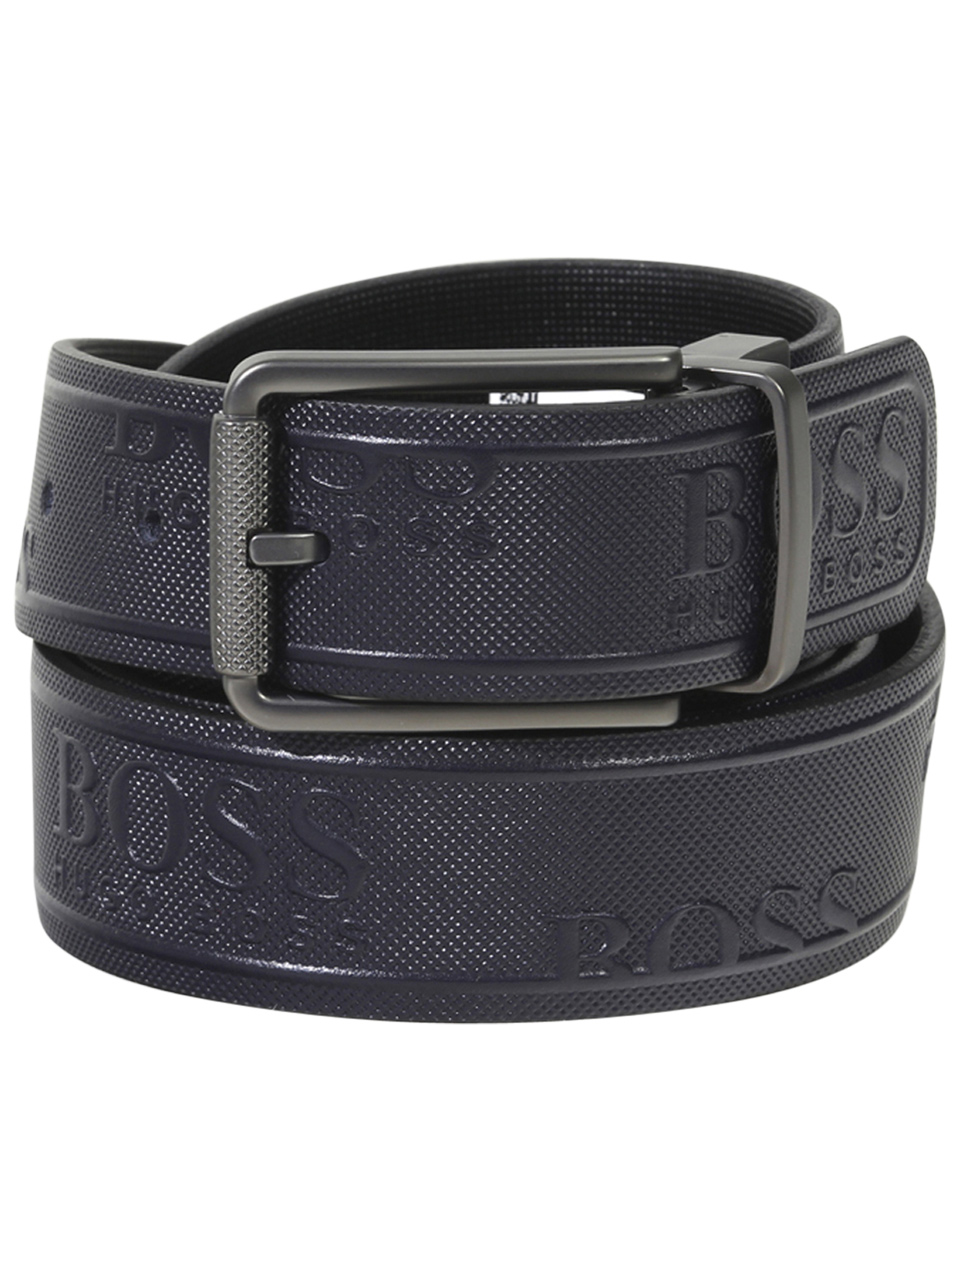 Hugo Boss Men/'s Bakaba-N Smooth Genuine Black Leather Belt